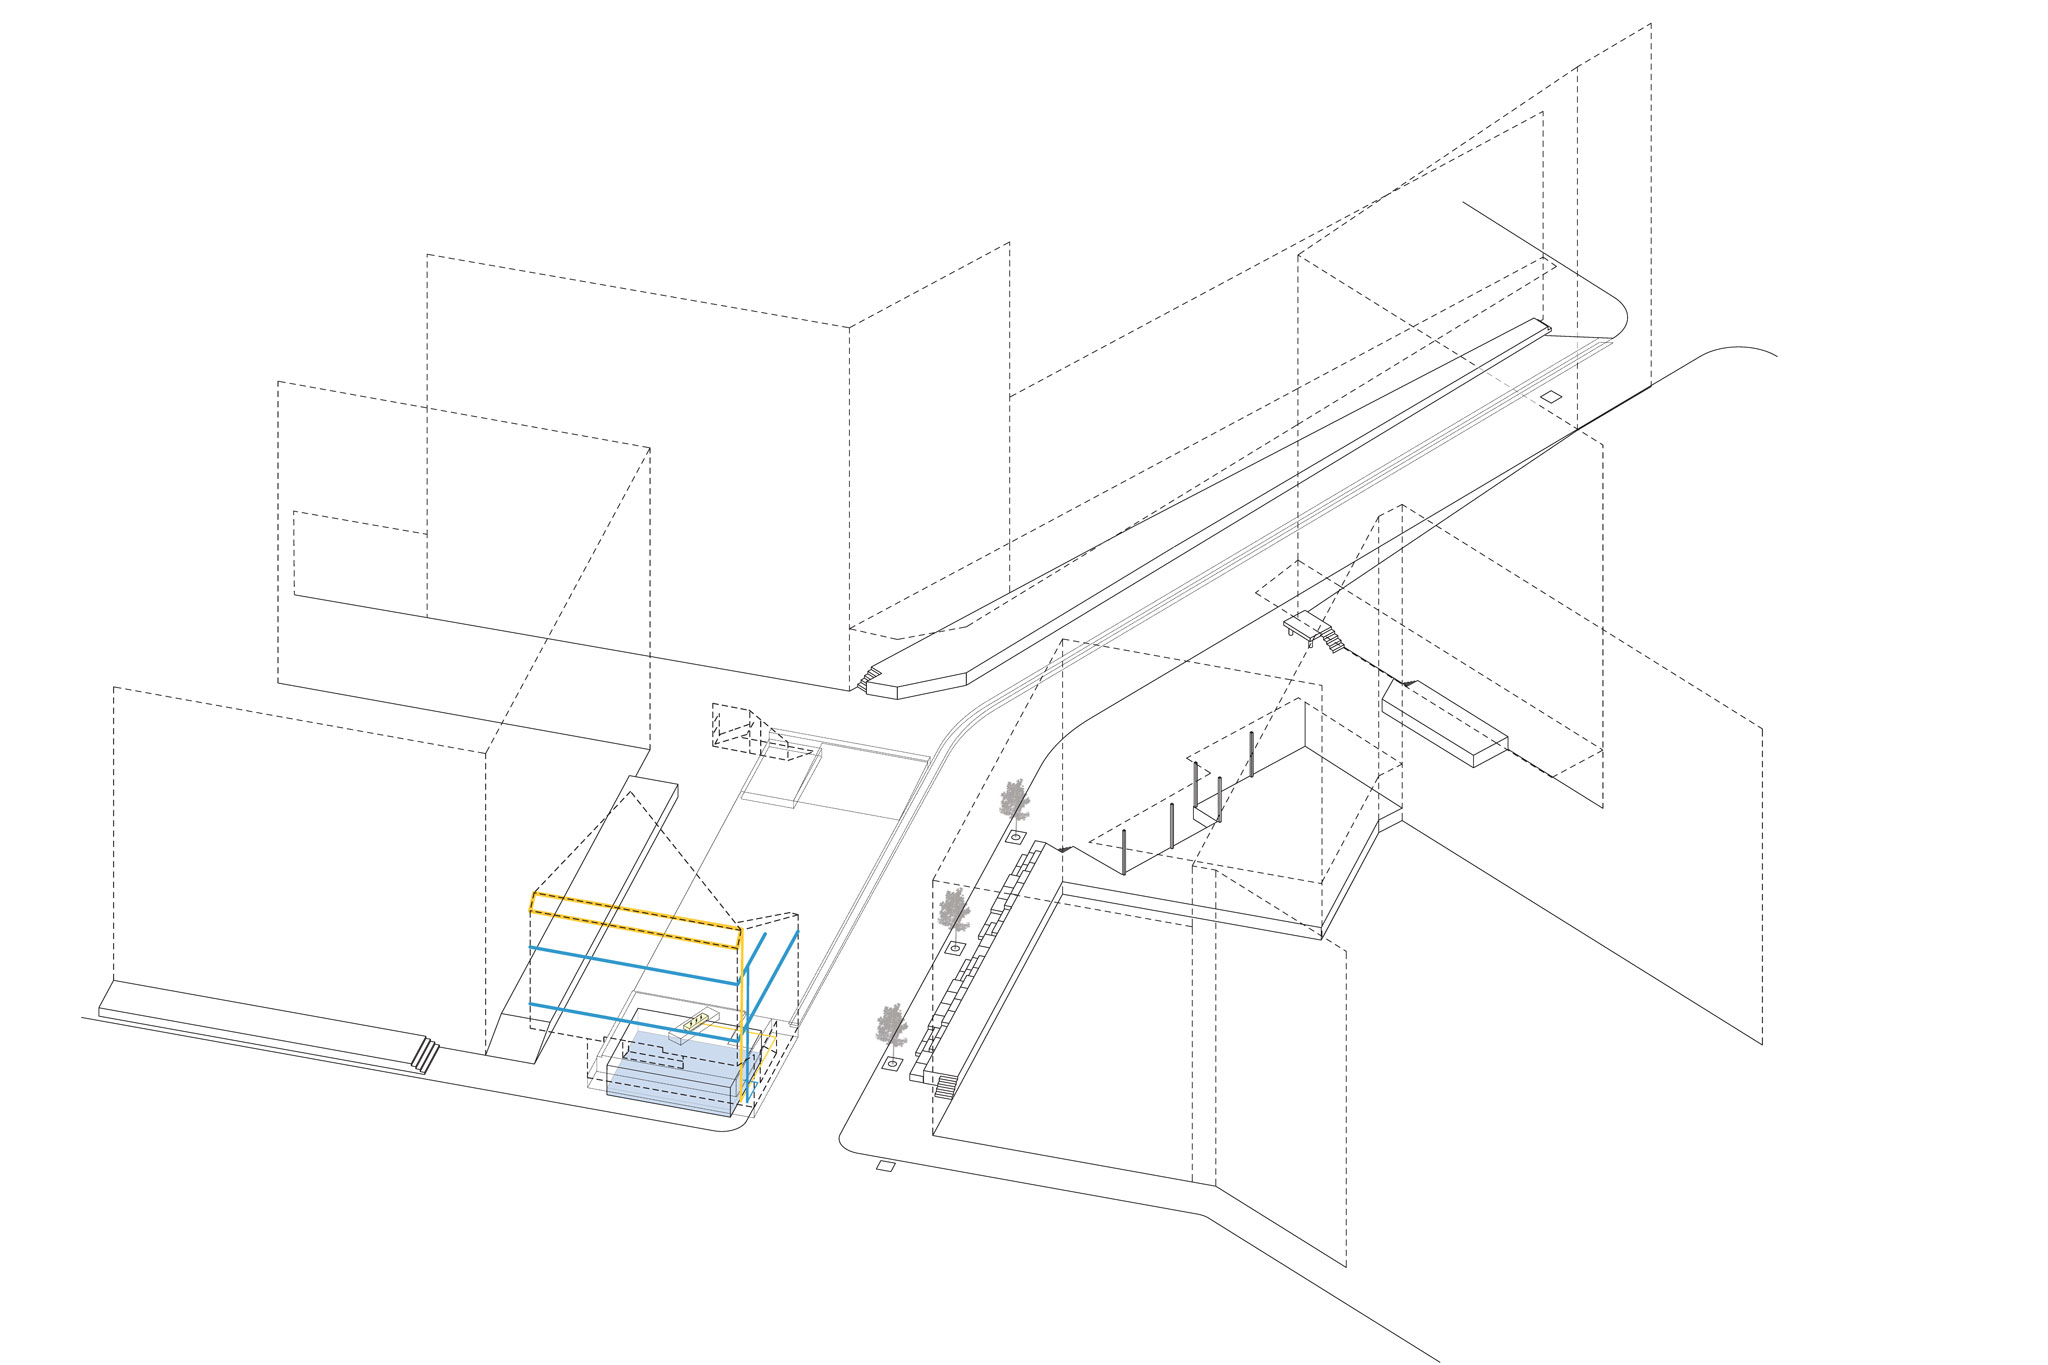 Irrigation, cisterns and pipes, and electrical system supporting greenwall, public space.